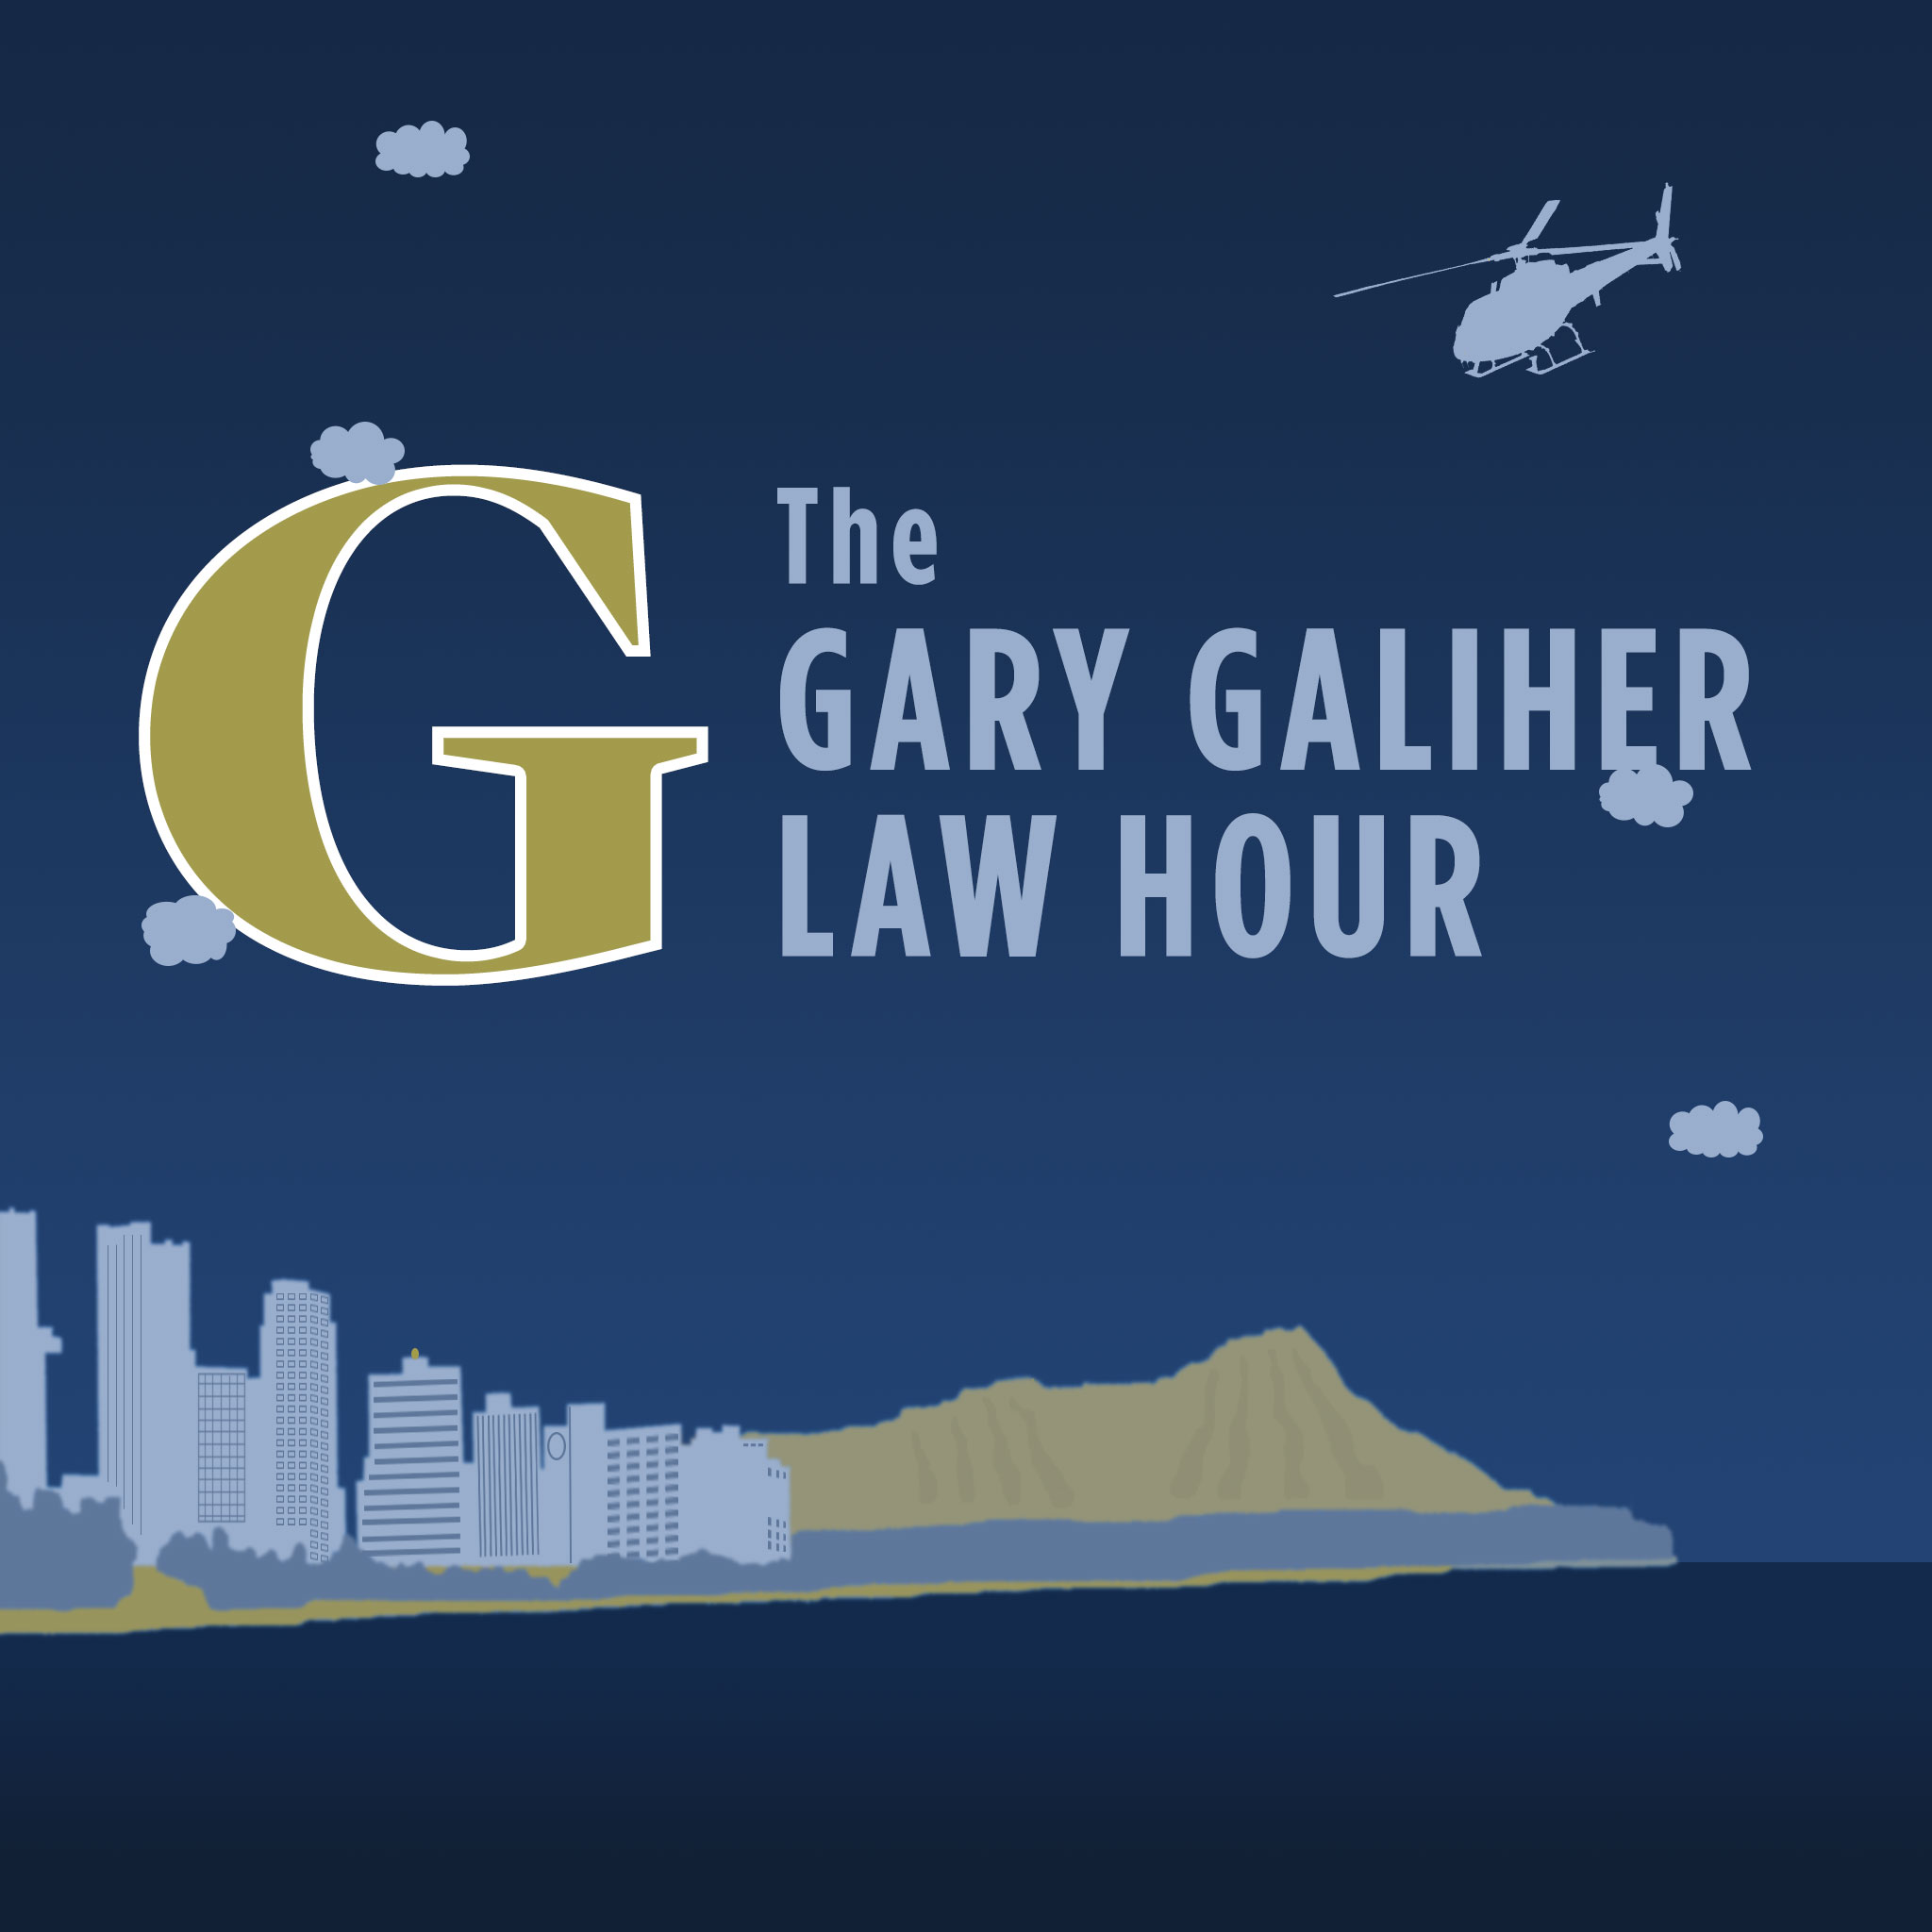 The Gary Galiher Law Hour Podcast